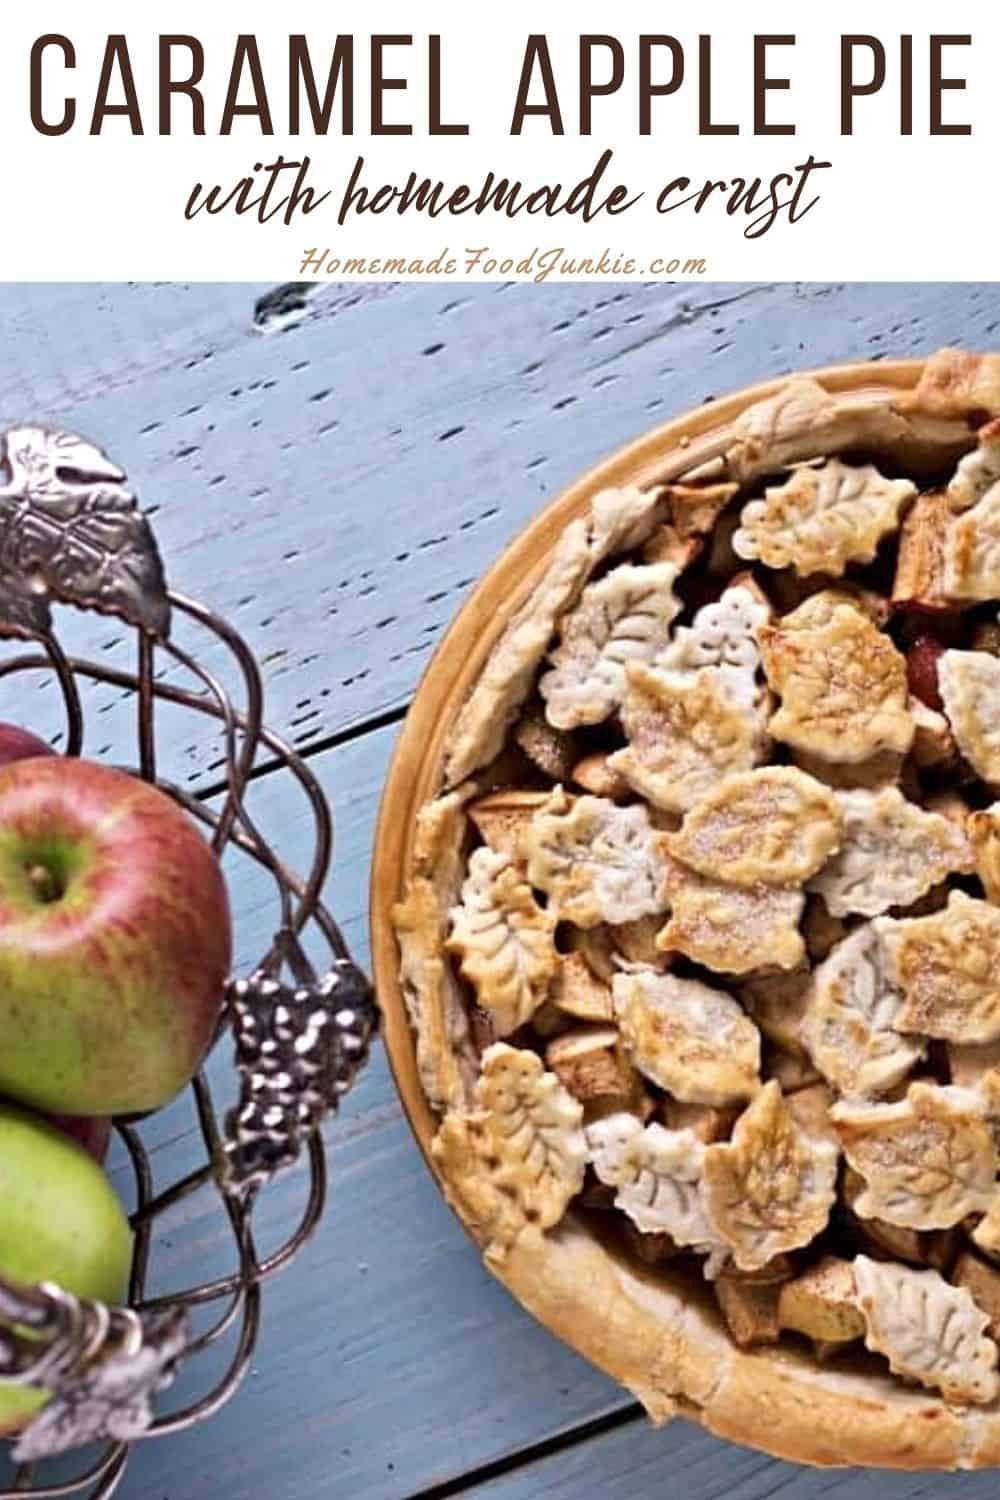 Caramel Apple Pie With Homemade Crust-Pin Image